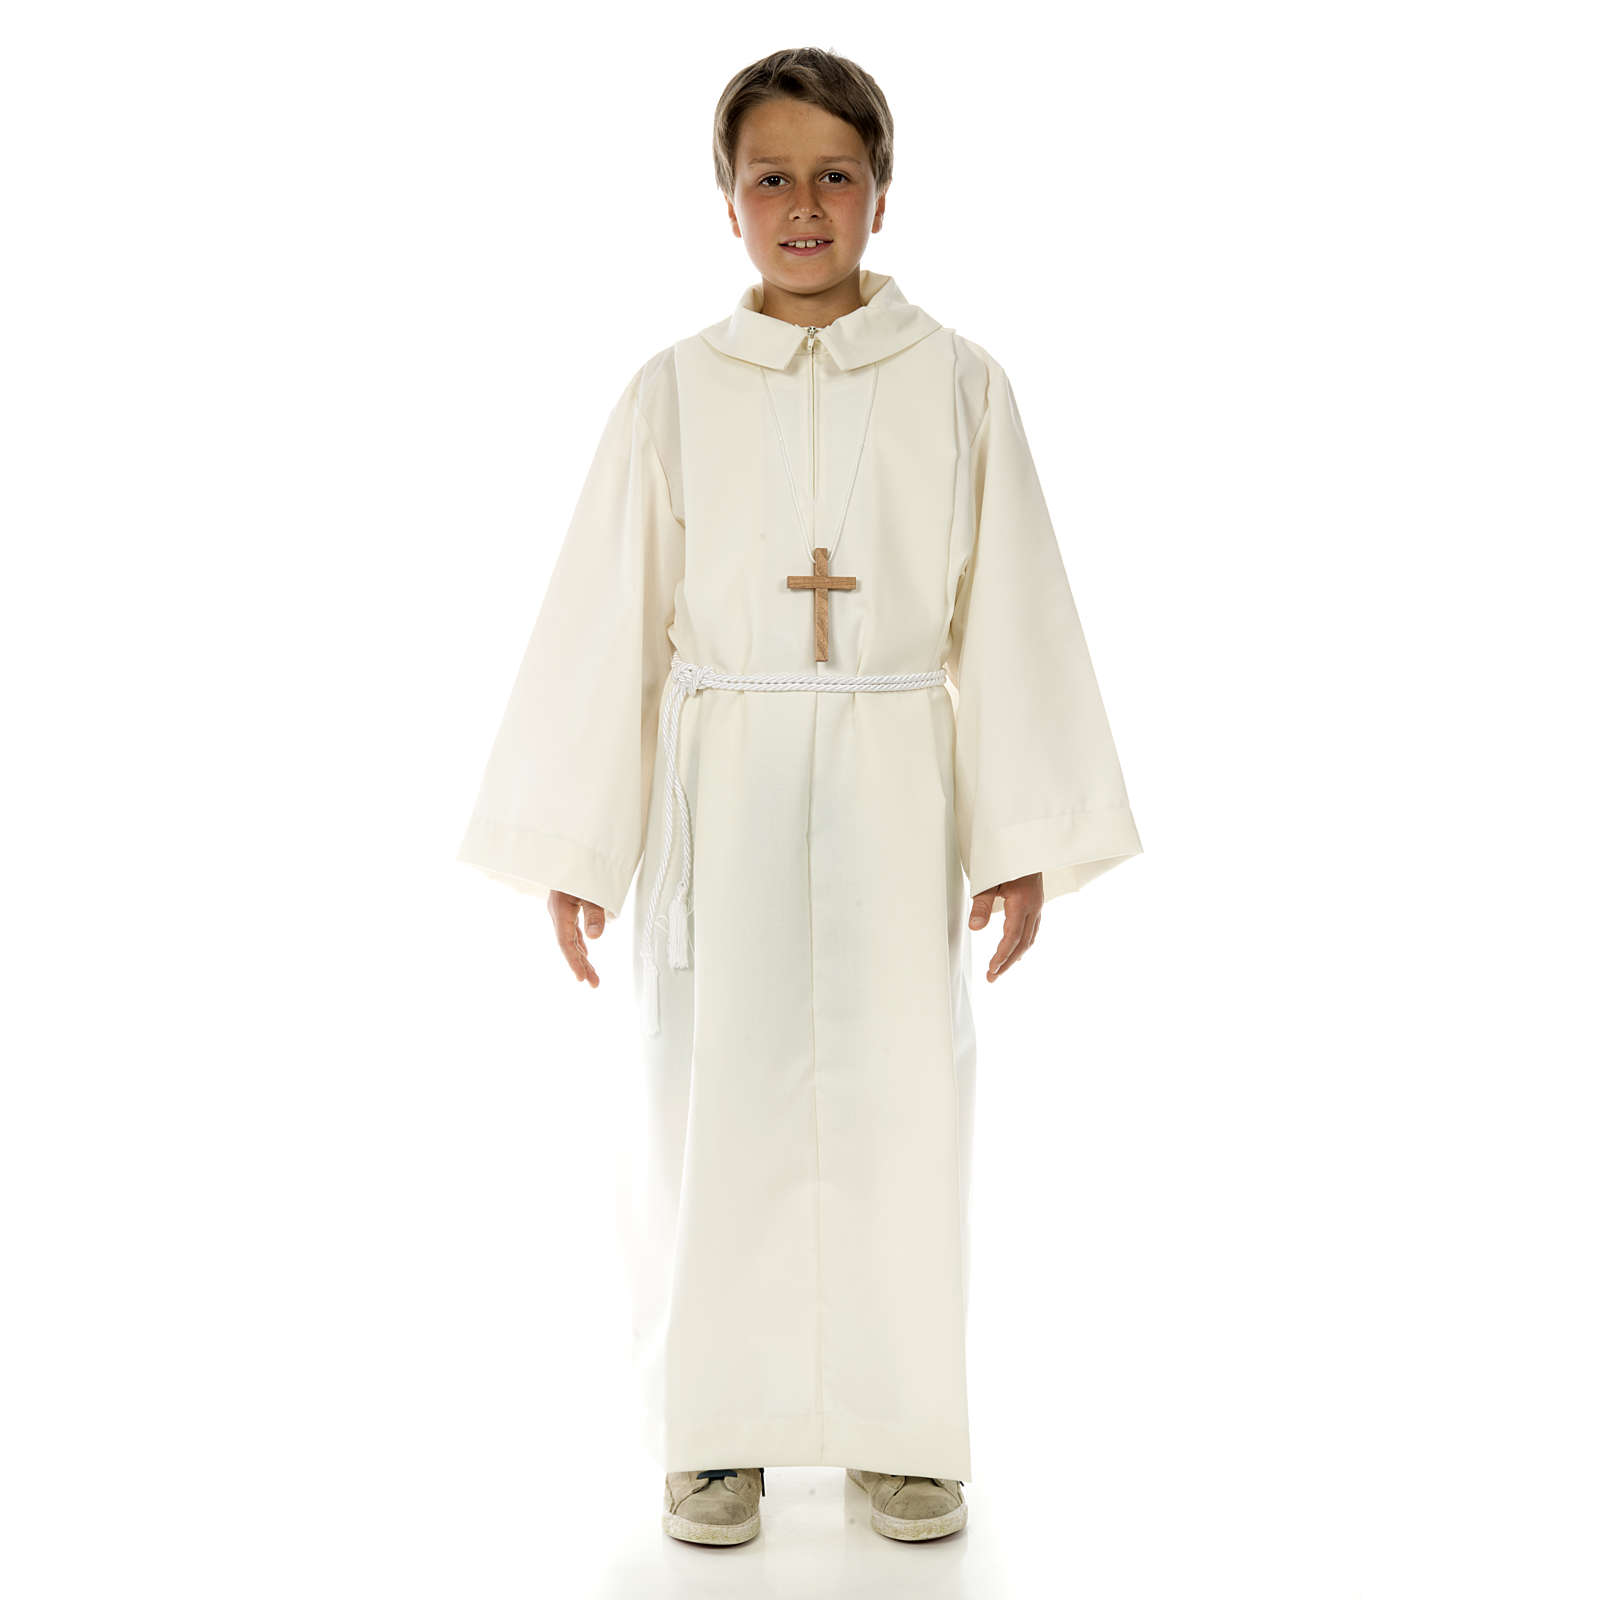 Altar server alb in polyester and wool 4